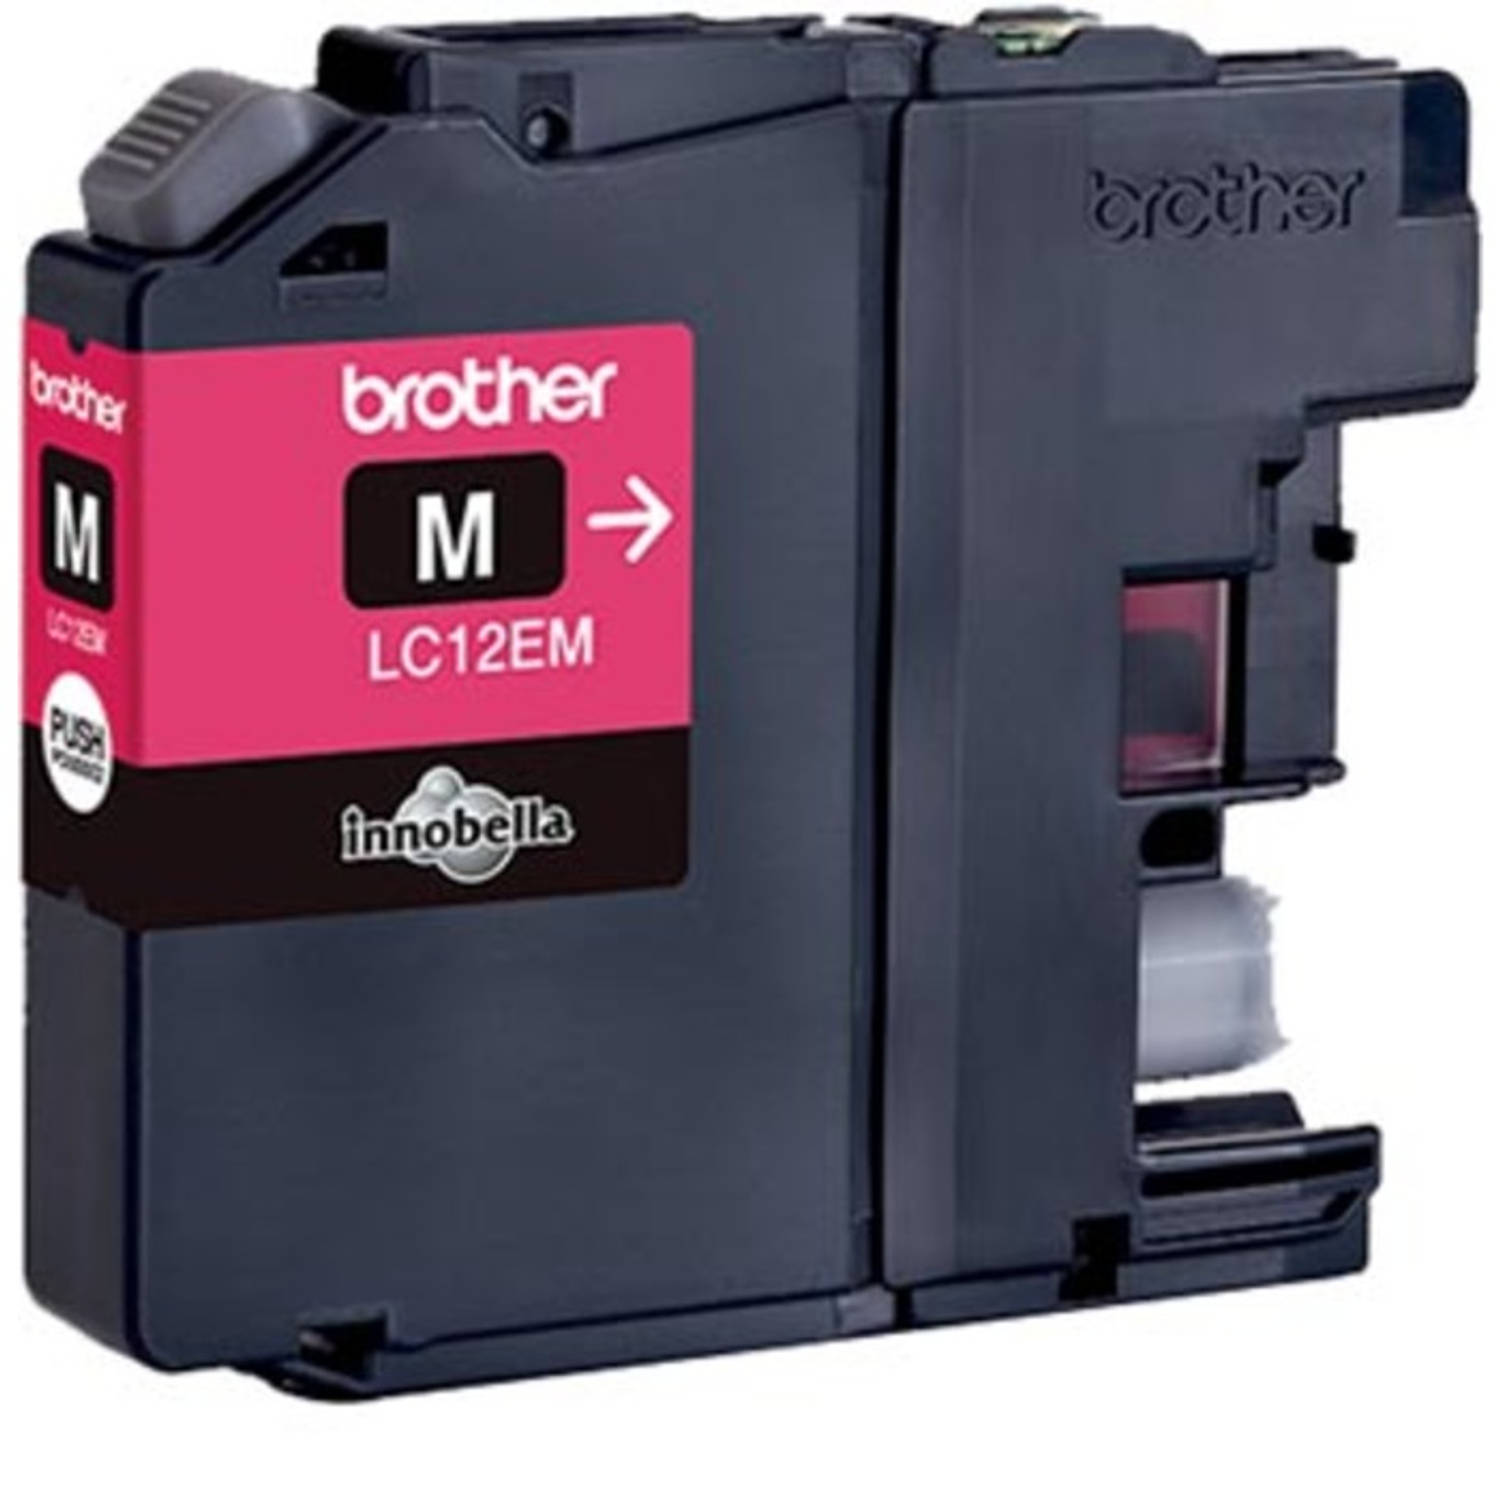 Brother inktcartridge magenta, 1.200 pagina's - OEM: LC-12EM